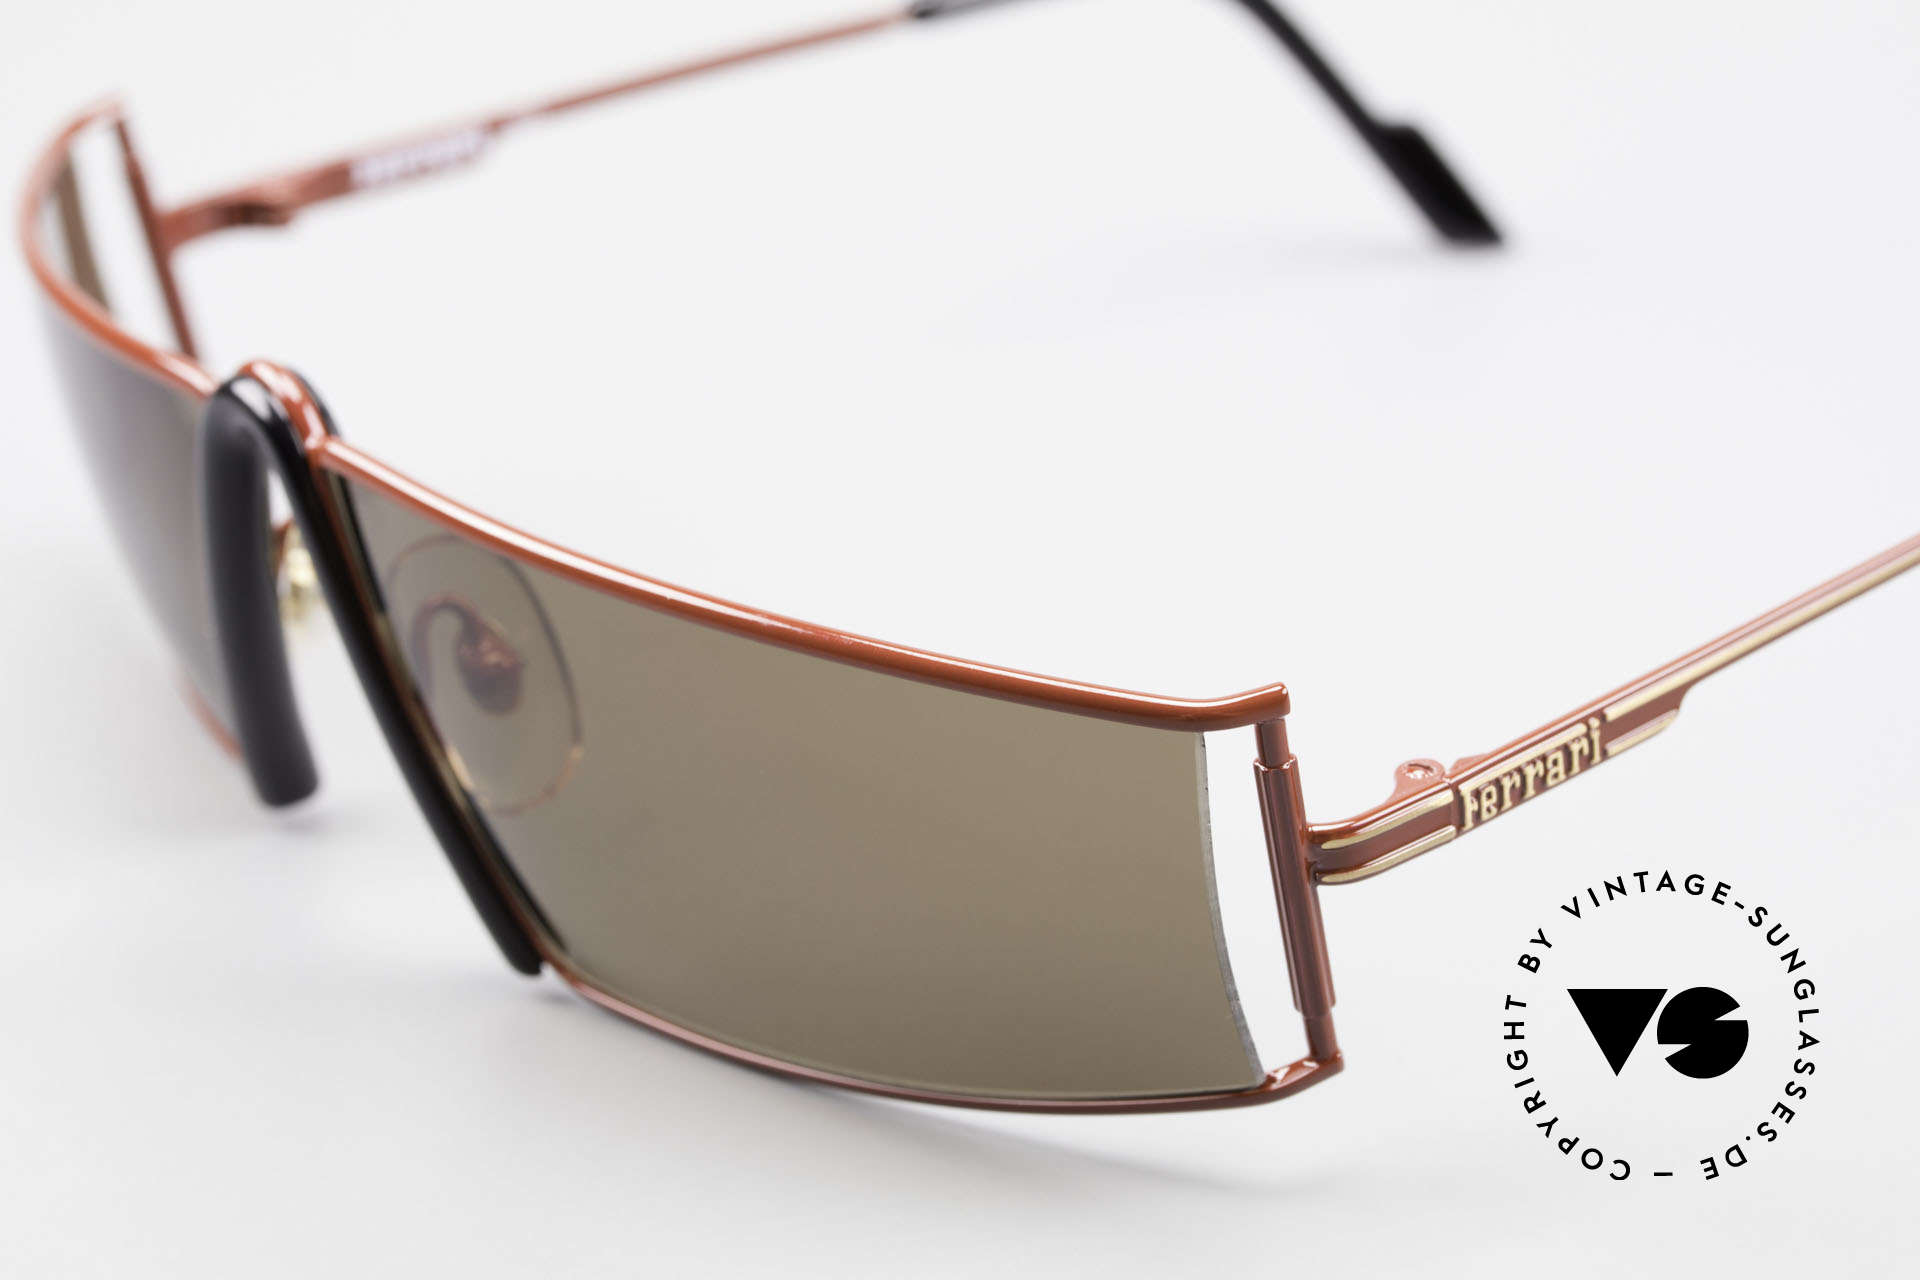 Ferrari F19/S Shades Like XL Reading Glasses, precious designer sunglasses from the early 1990's, Made for Men